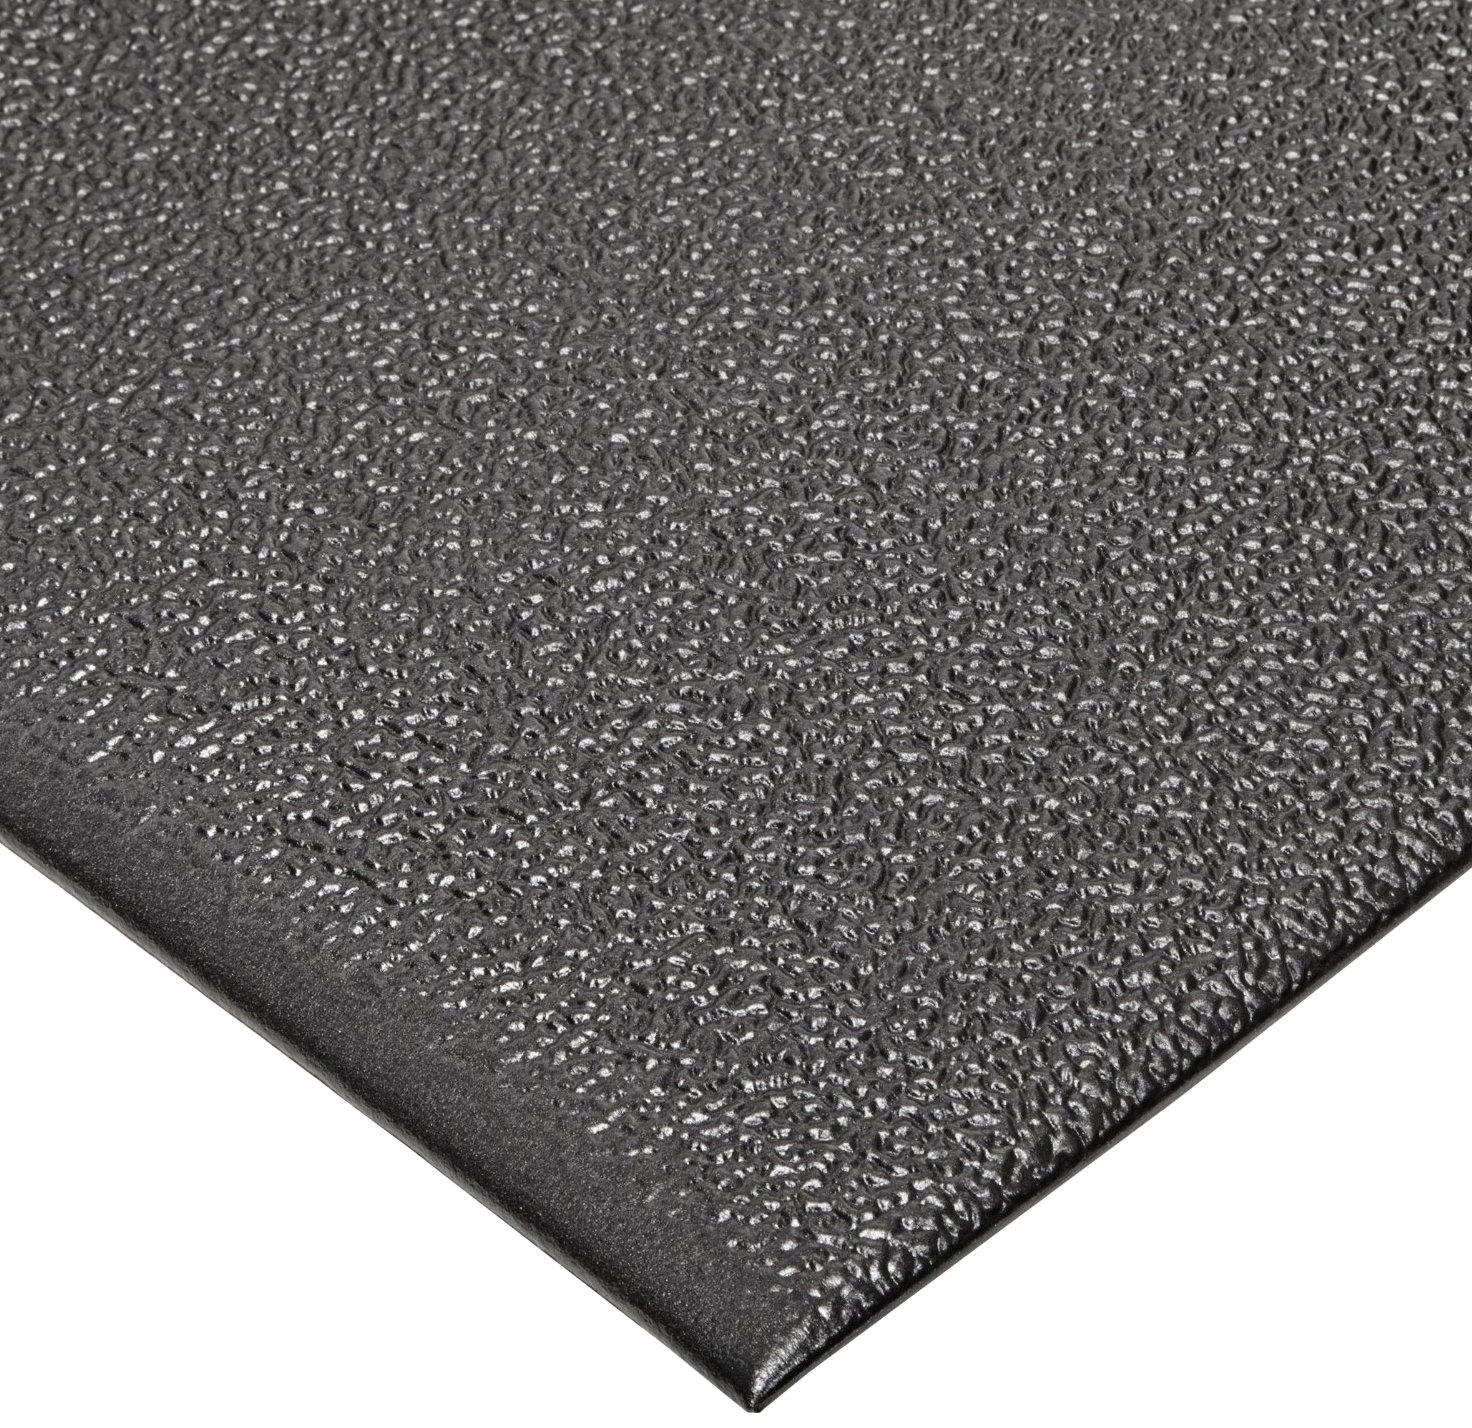 NoTrax T41 Heavy Duty PVC Safety//Anti-Fatigue Comfort Rest Pebble Foam For Dry Areas 2 Width x 5 Length x 9//16 Thickness Coal 2/' Width x 5/' Length x 9//16 Thickness Superior Manufacturing Group Inc T41S0425BL